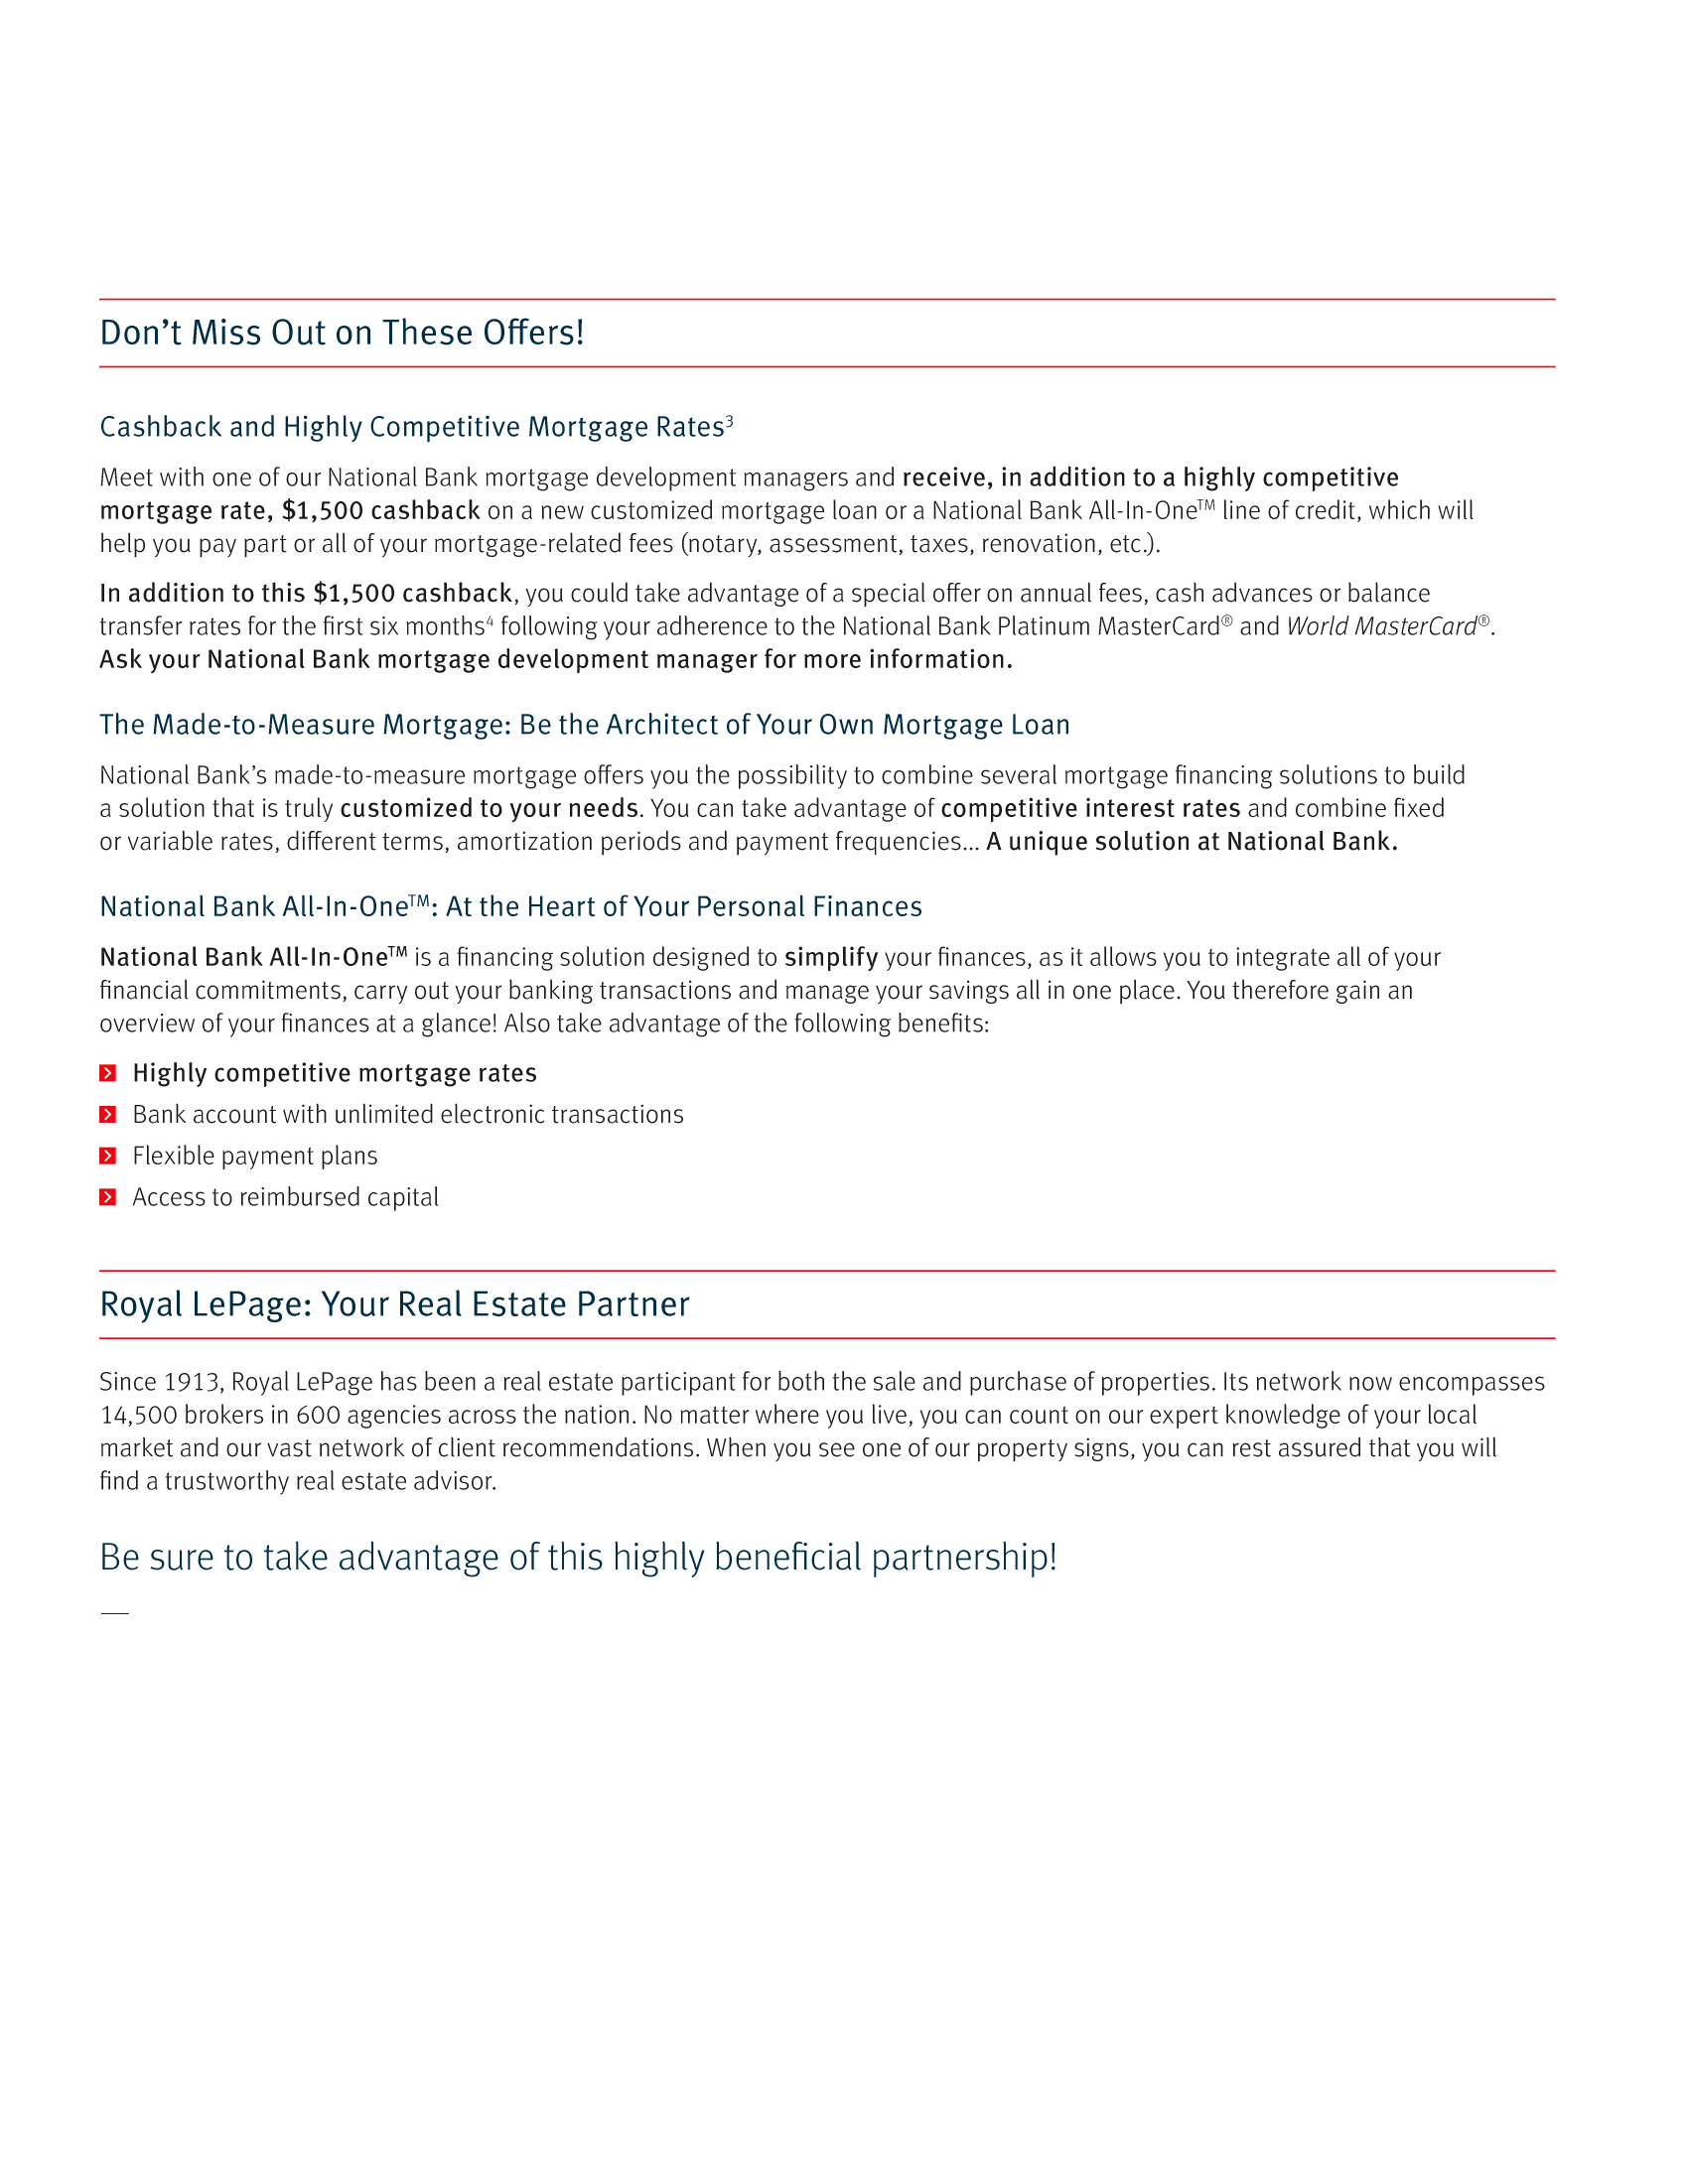 """3   Leaflet """"A Partnership with a Wealth of Advantages"""" - Royal Lepage"""